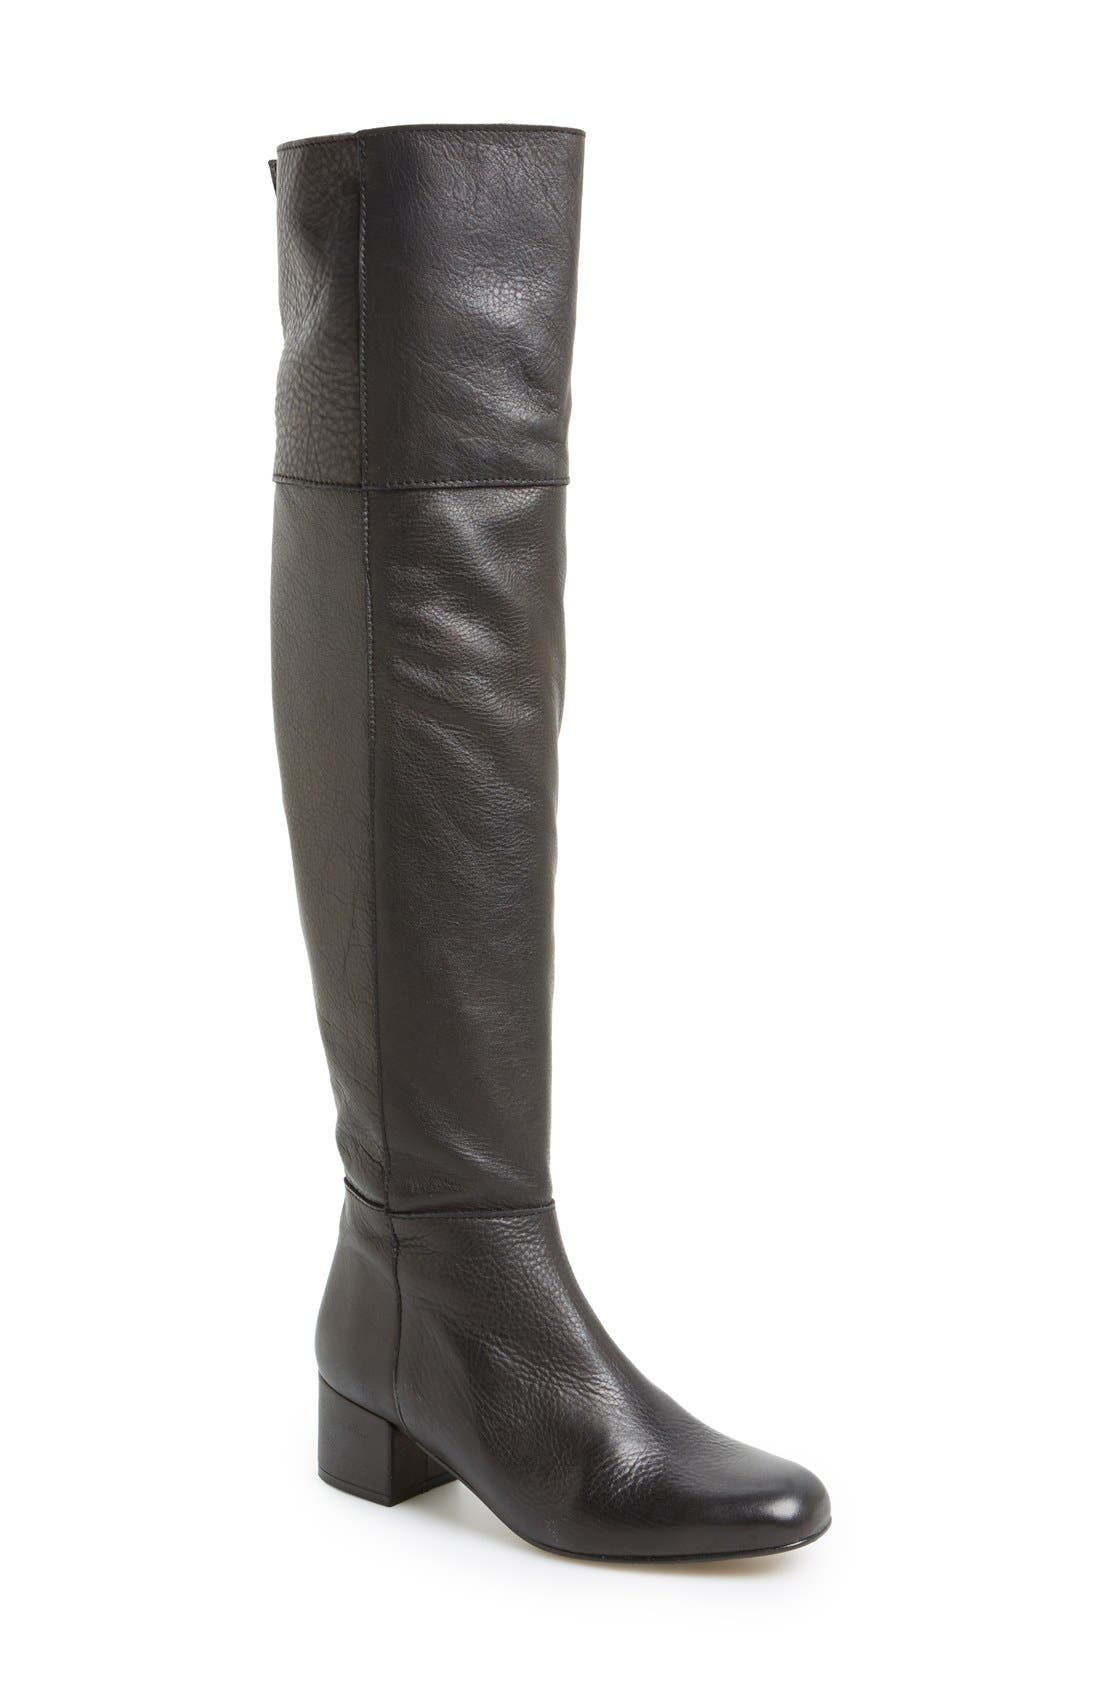 Main Image - Topshop 'Canada' Over the Knee Leather Boot (Women)